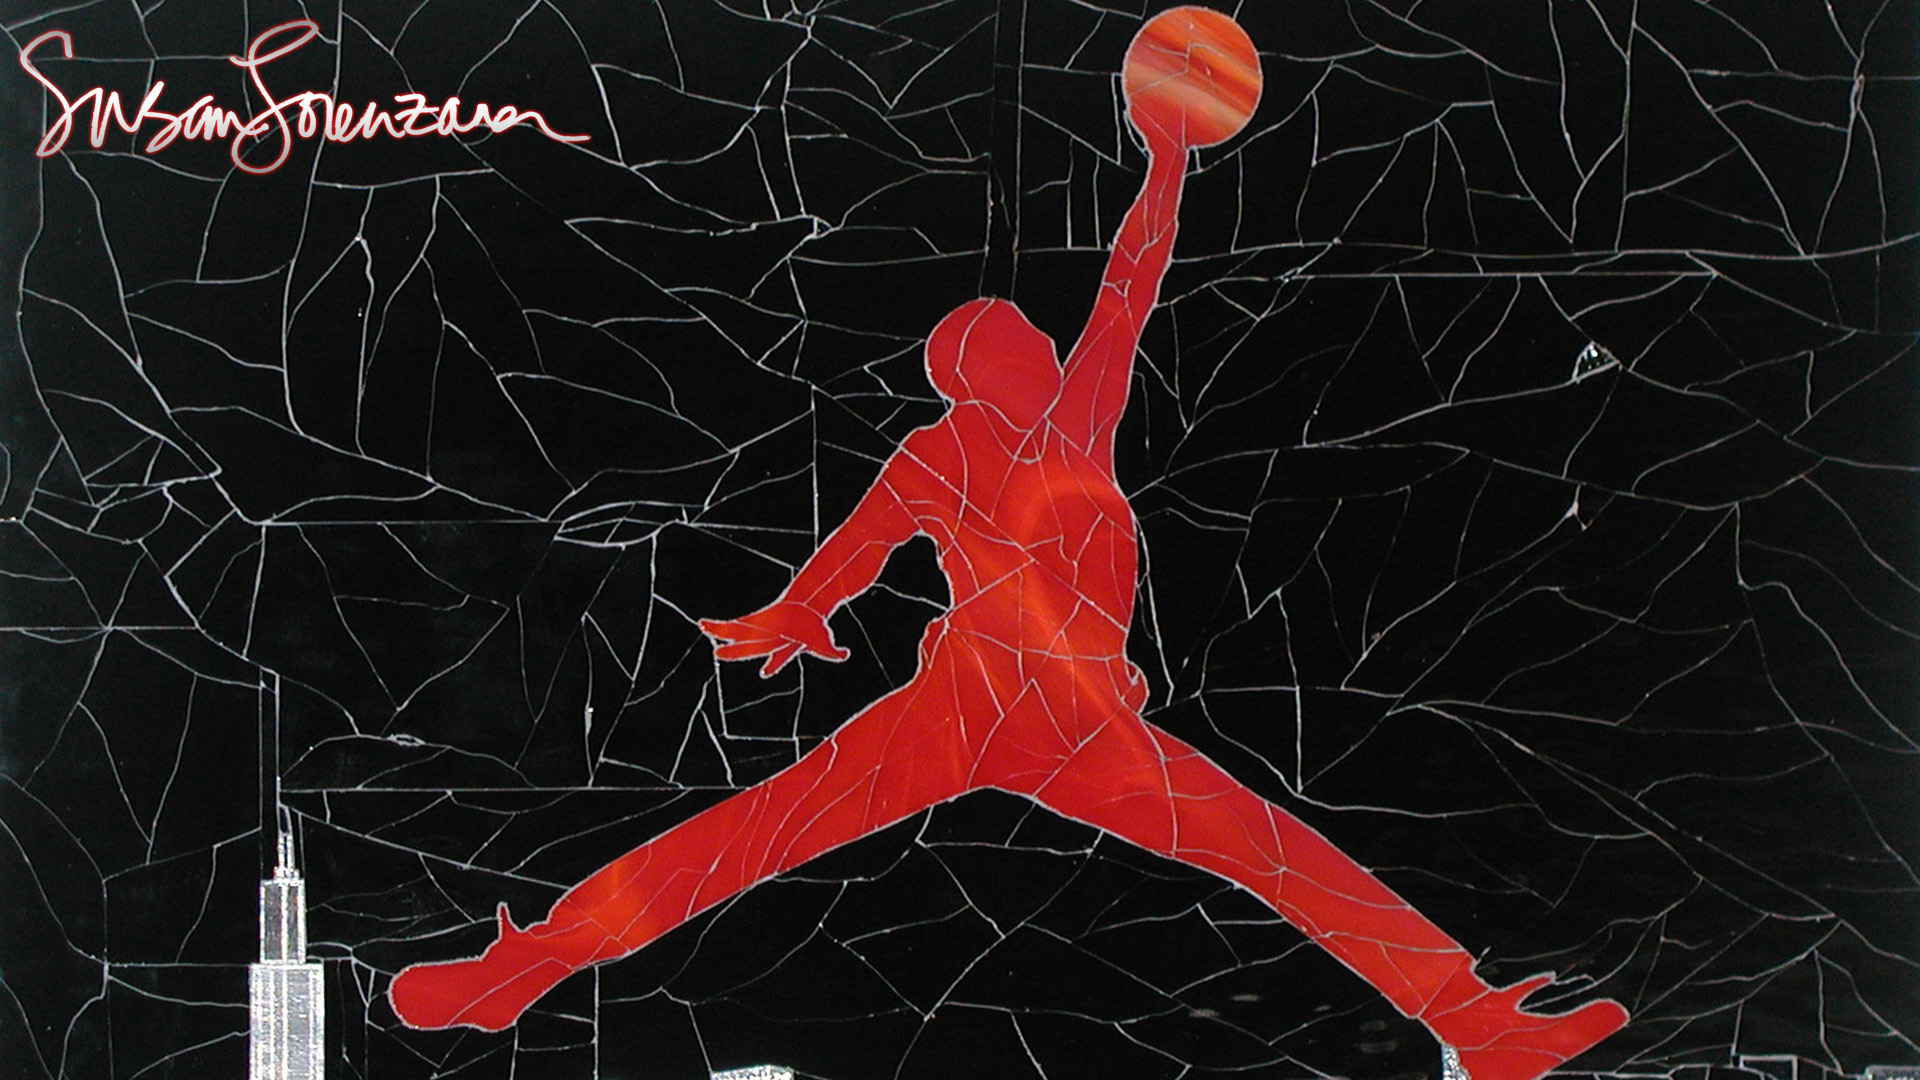 air jordan essay If you think air jordans are just sneakers, you're missing the point scoop jackson details the 30-year reign of the world's most recognizable basketball shoe.